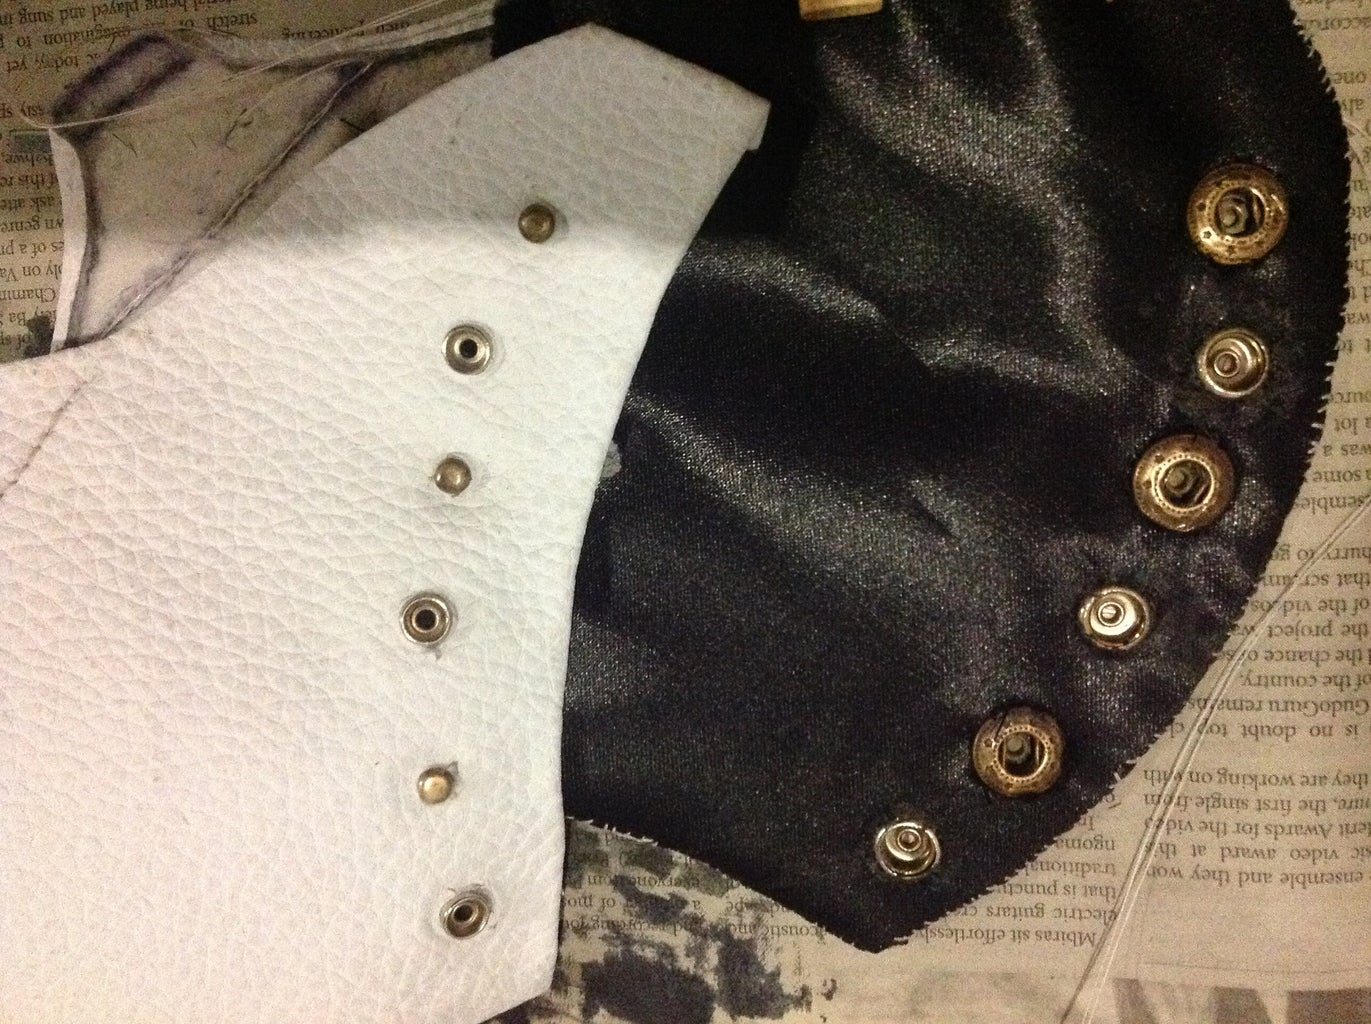 Sewing in the Inner Black Satin Layer.